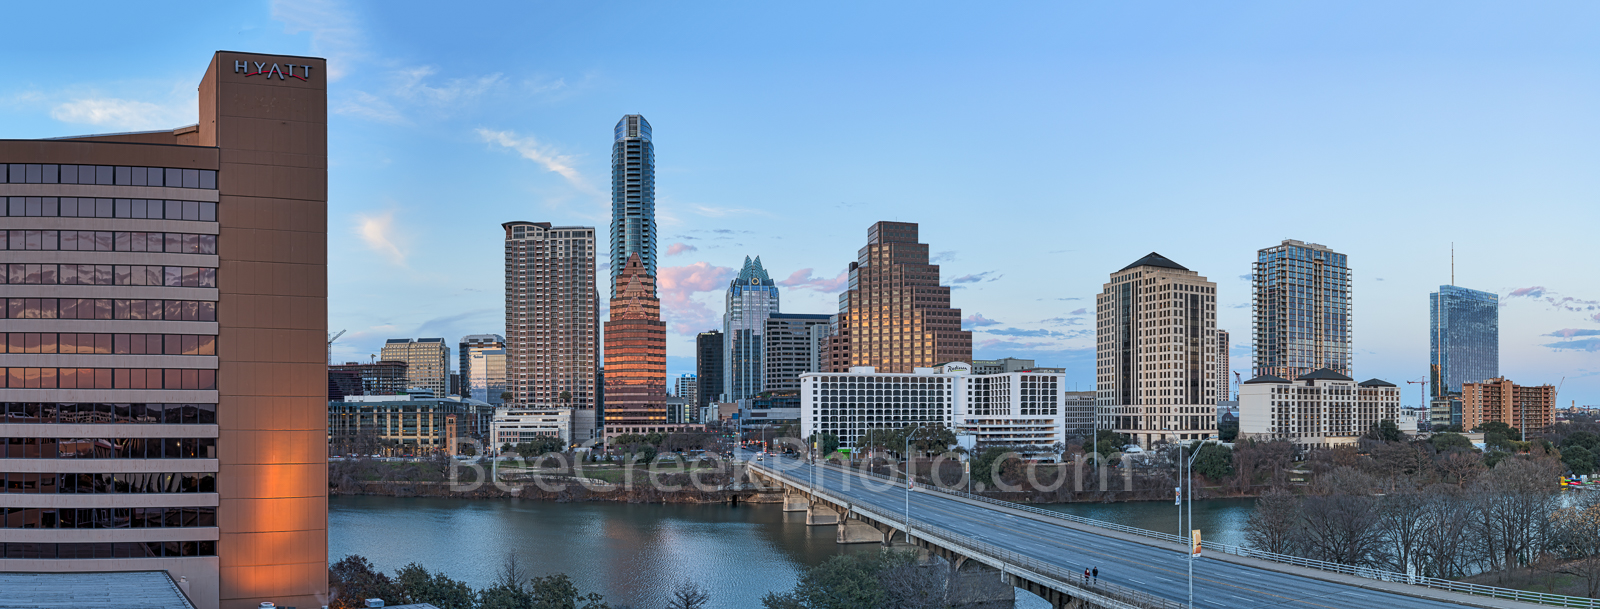 Austin Sunset Skyline Pano, Austin skyline,  Austin, Congress, pano, panorama, panoramic, Lady Bird Lake, sky, pink, Capitol, texas, state government, restaurants, recreation, trails, 10K's, Universit, photo